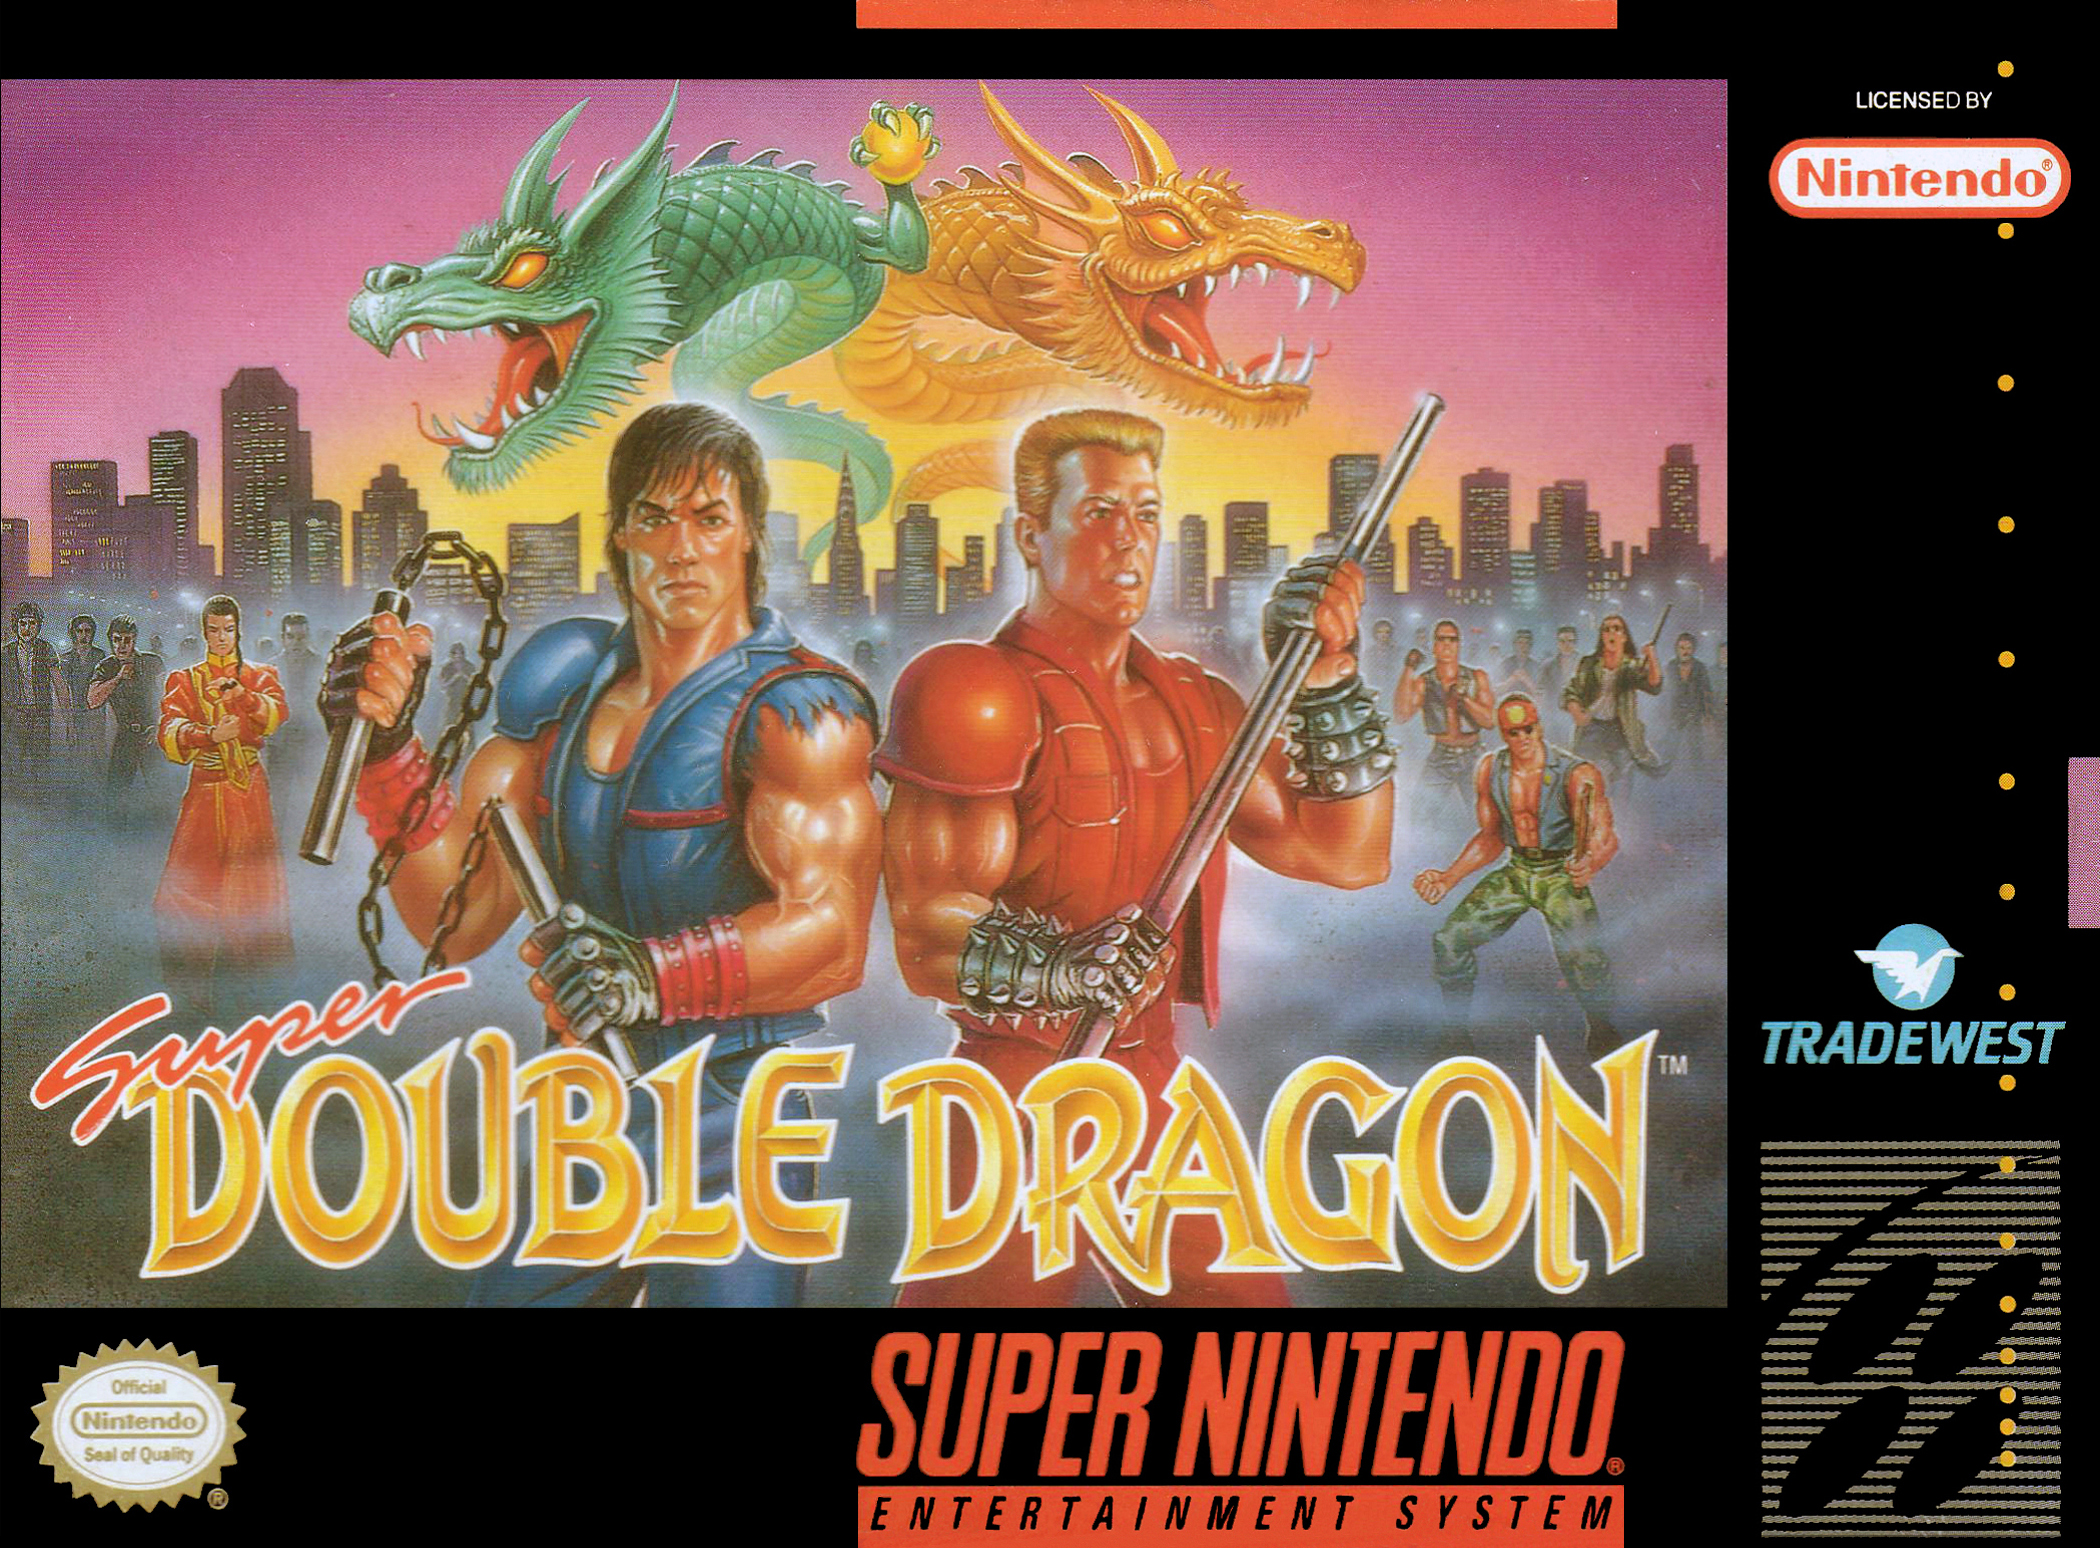 2364815 snes superdoubledragon - Retro Gallery Archive (Full Size)